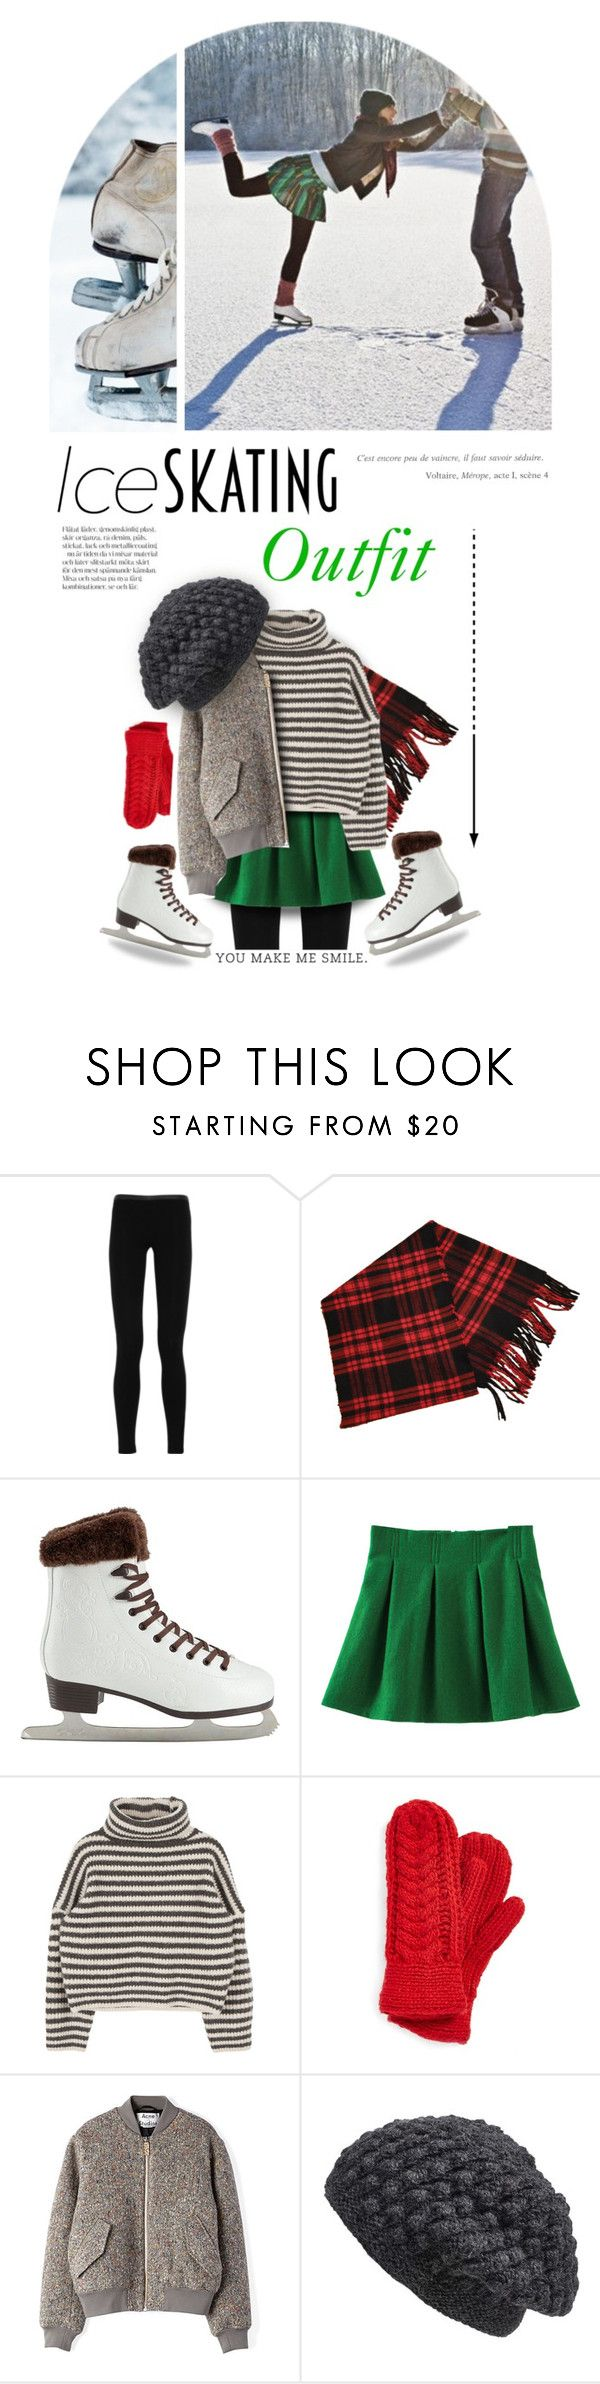 """""""Ice Skating Outfit..."""" by angiesprad ❤ liked on Polyvore featuring Emilio Pucci, Christian Dior, Nirvanna Designs and Acne Studios"""